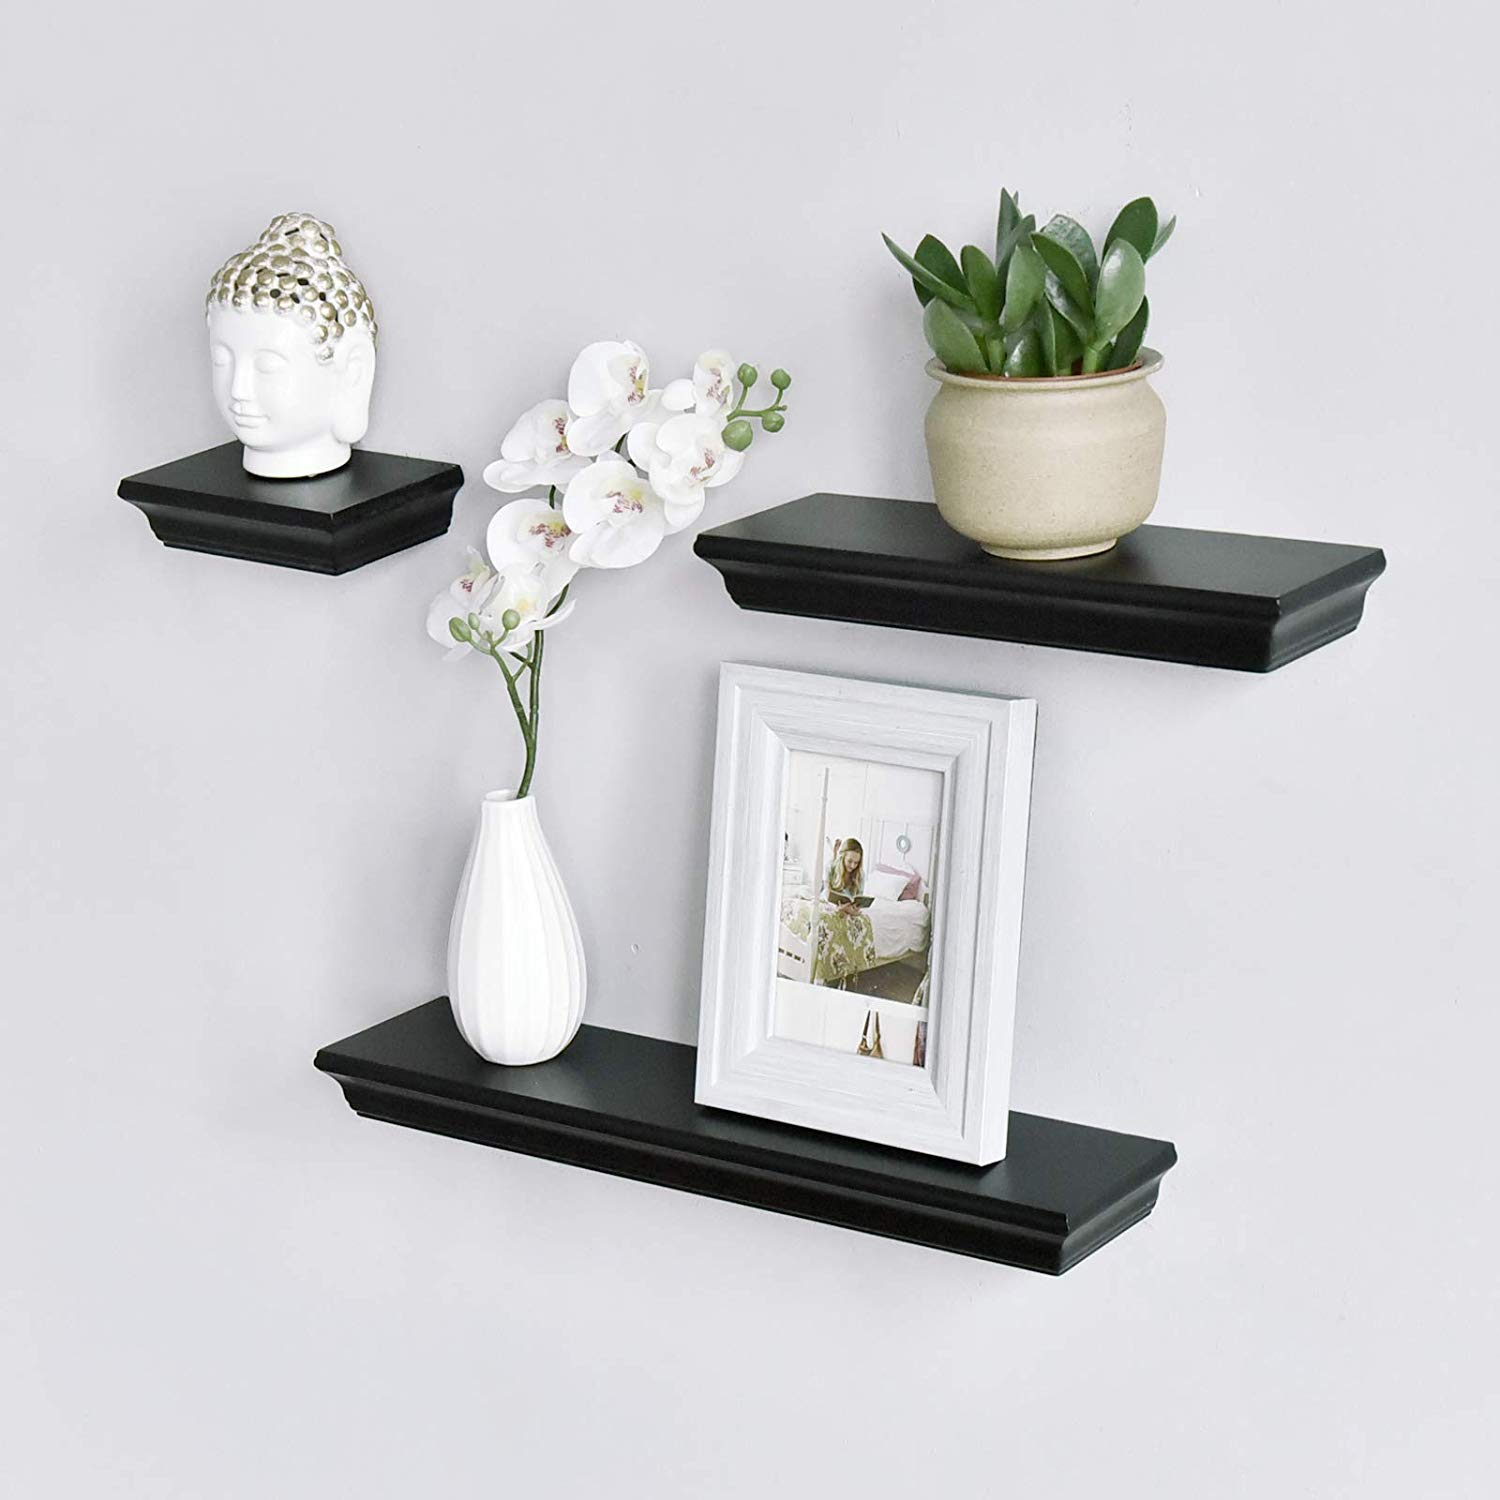 welland wall ledge shelves espresso floating set mounted kitchen dining diy shoe shelf plans installing self stick vinyl floor tiles outdoor corner shelving unit hidden supports